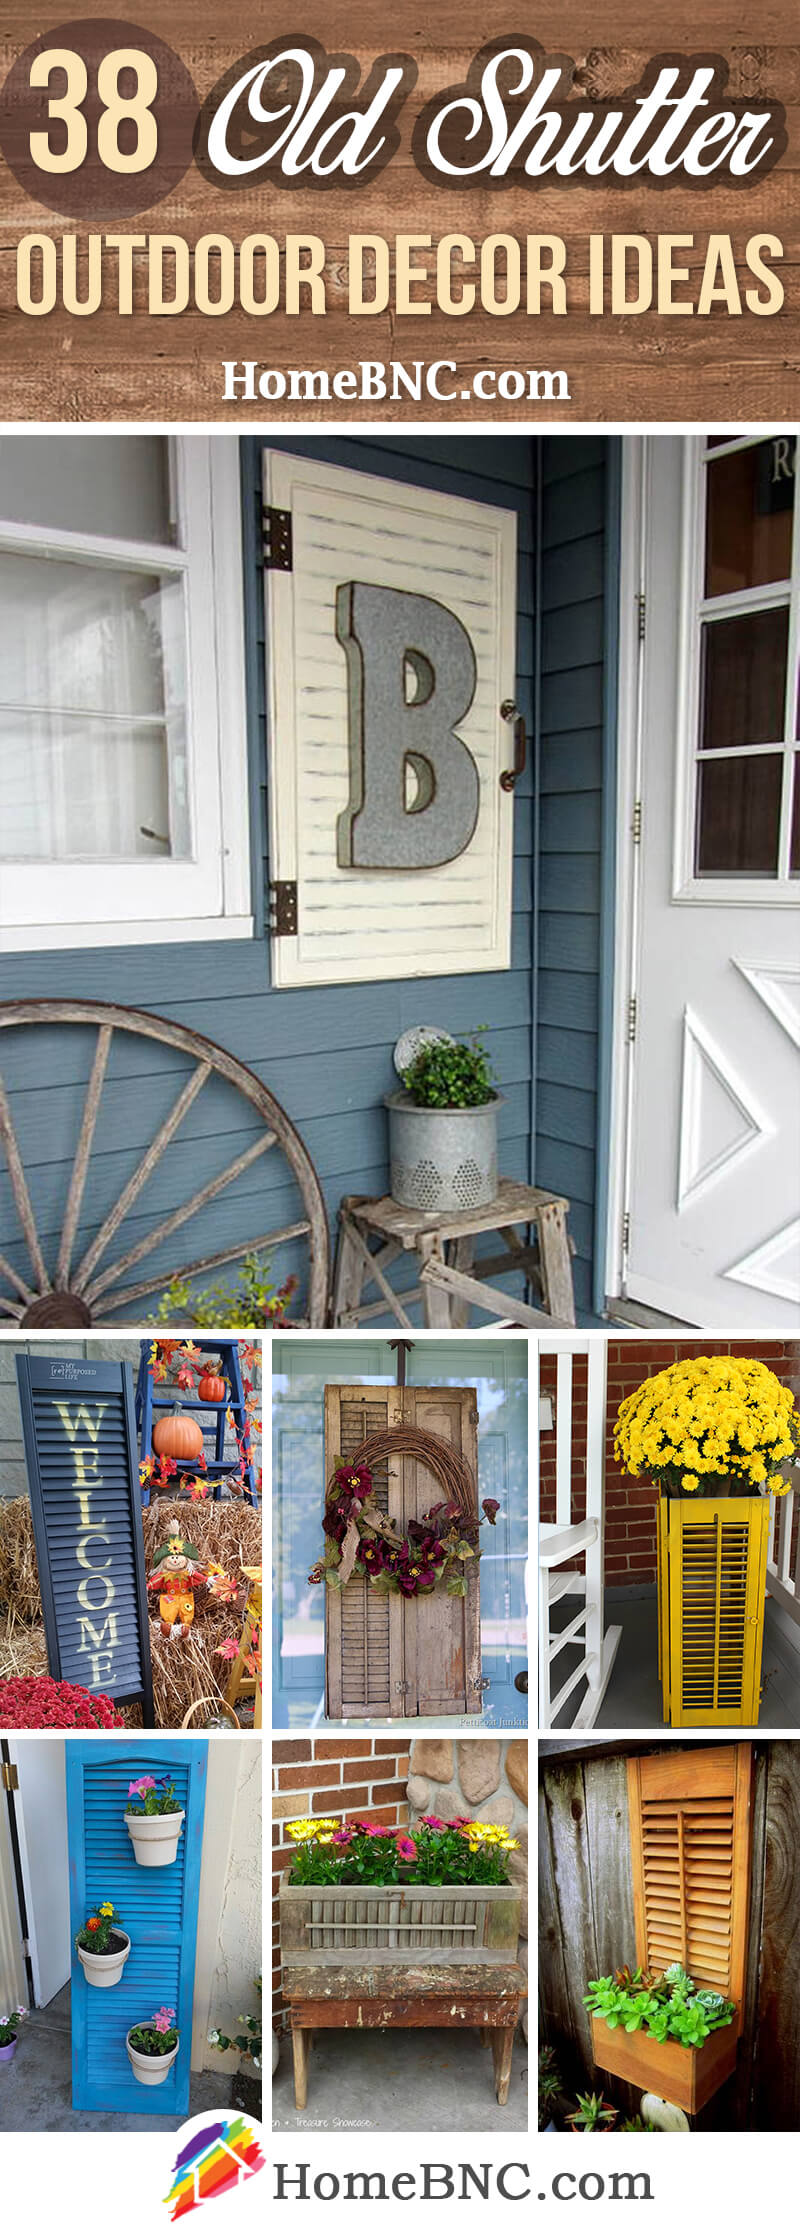 Old Shutter Outdoor Decor Ideas